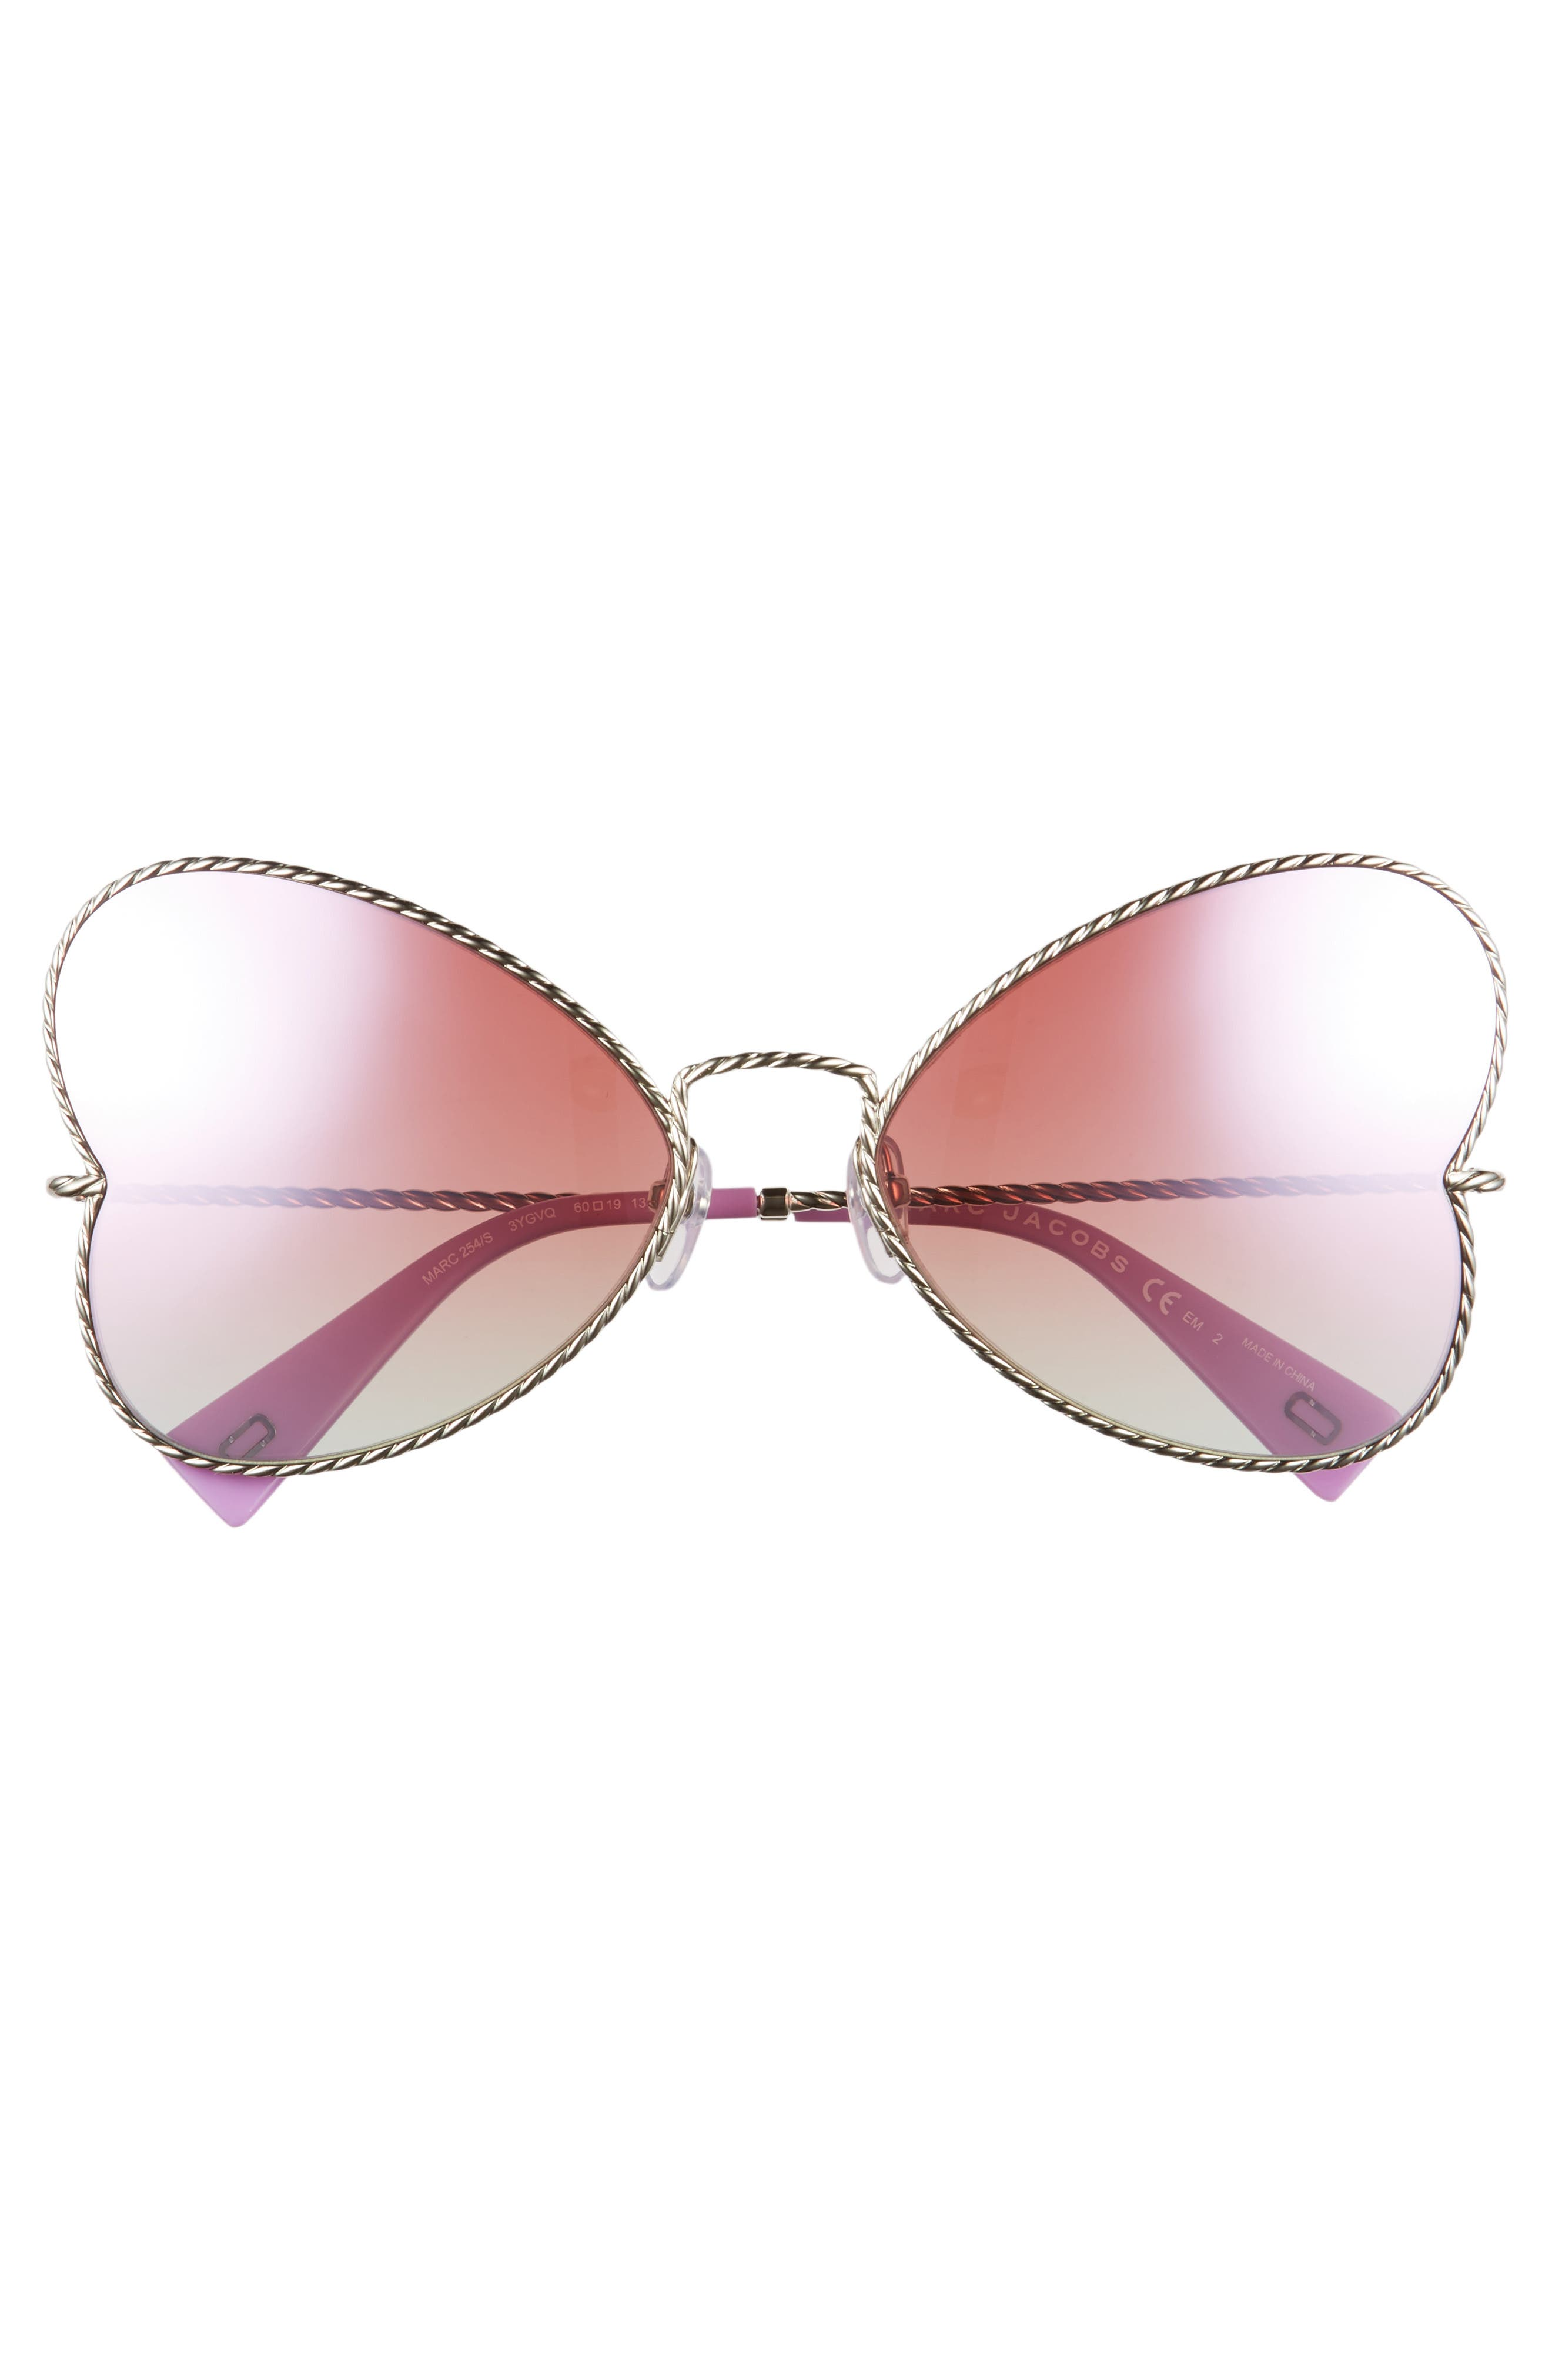 Alternate Image 3  - MARC JACOBS 60mm Heart Sunglasses